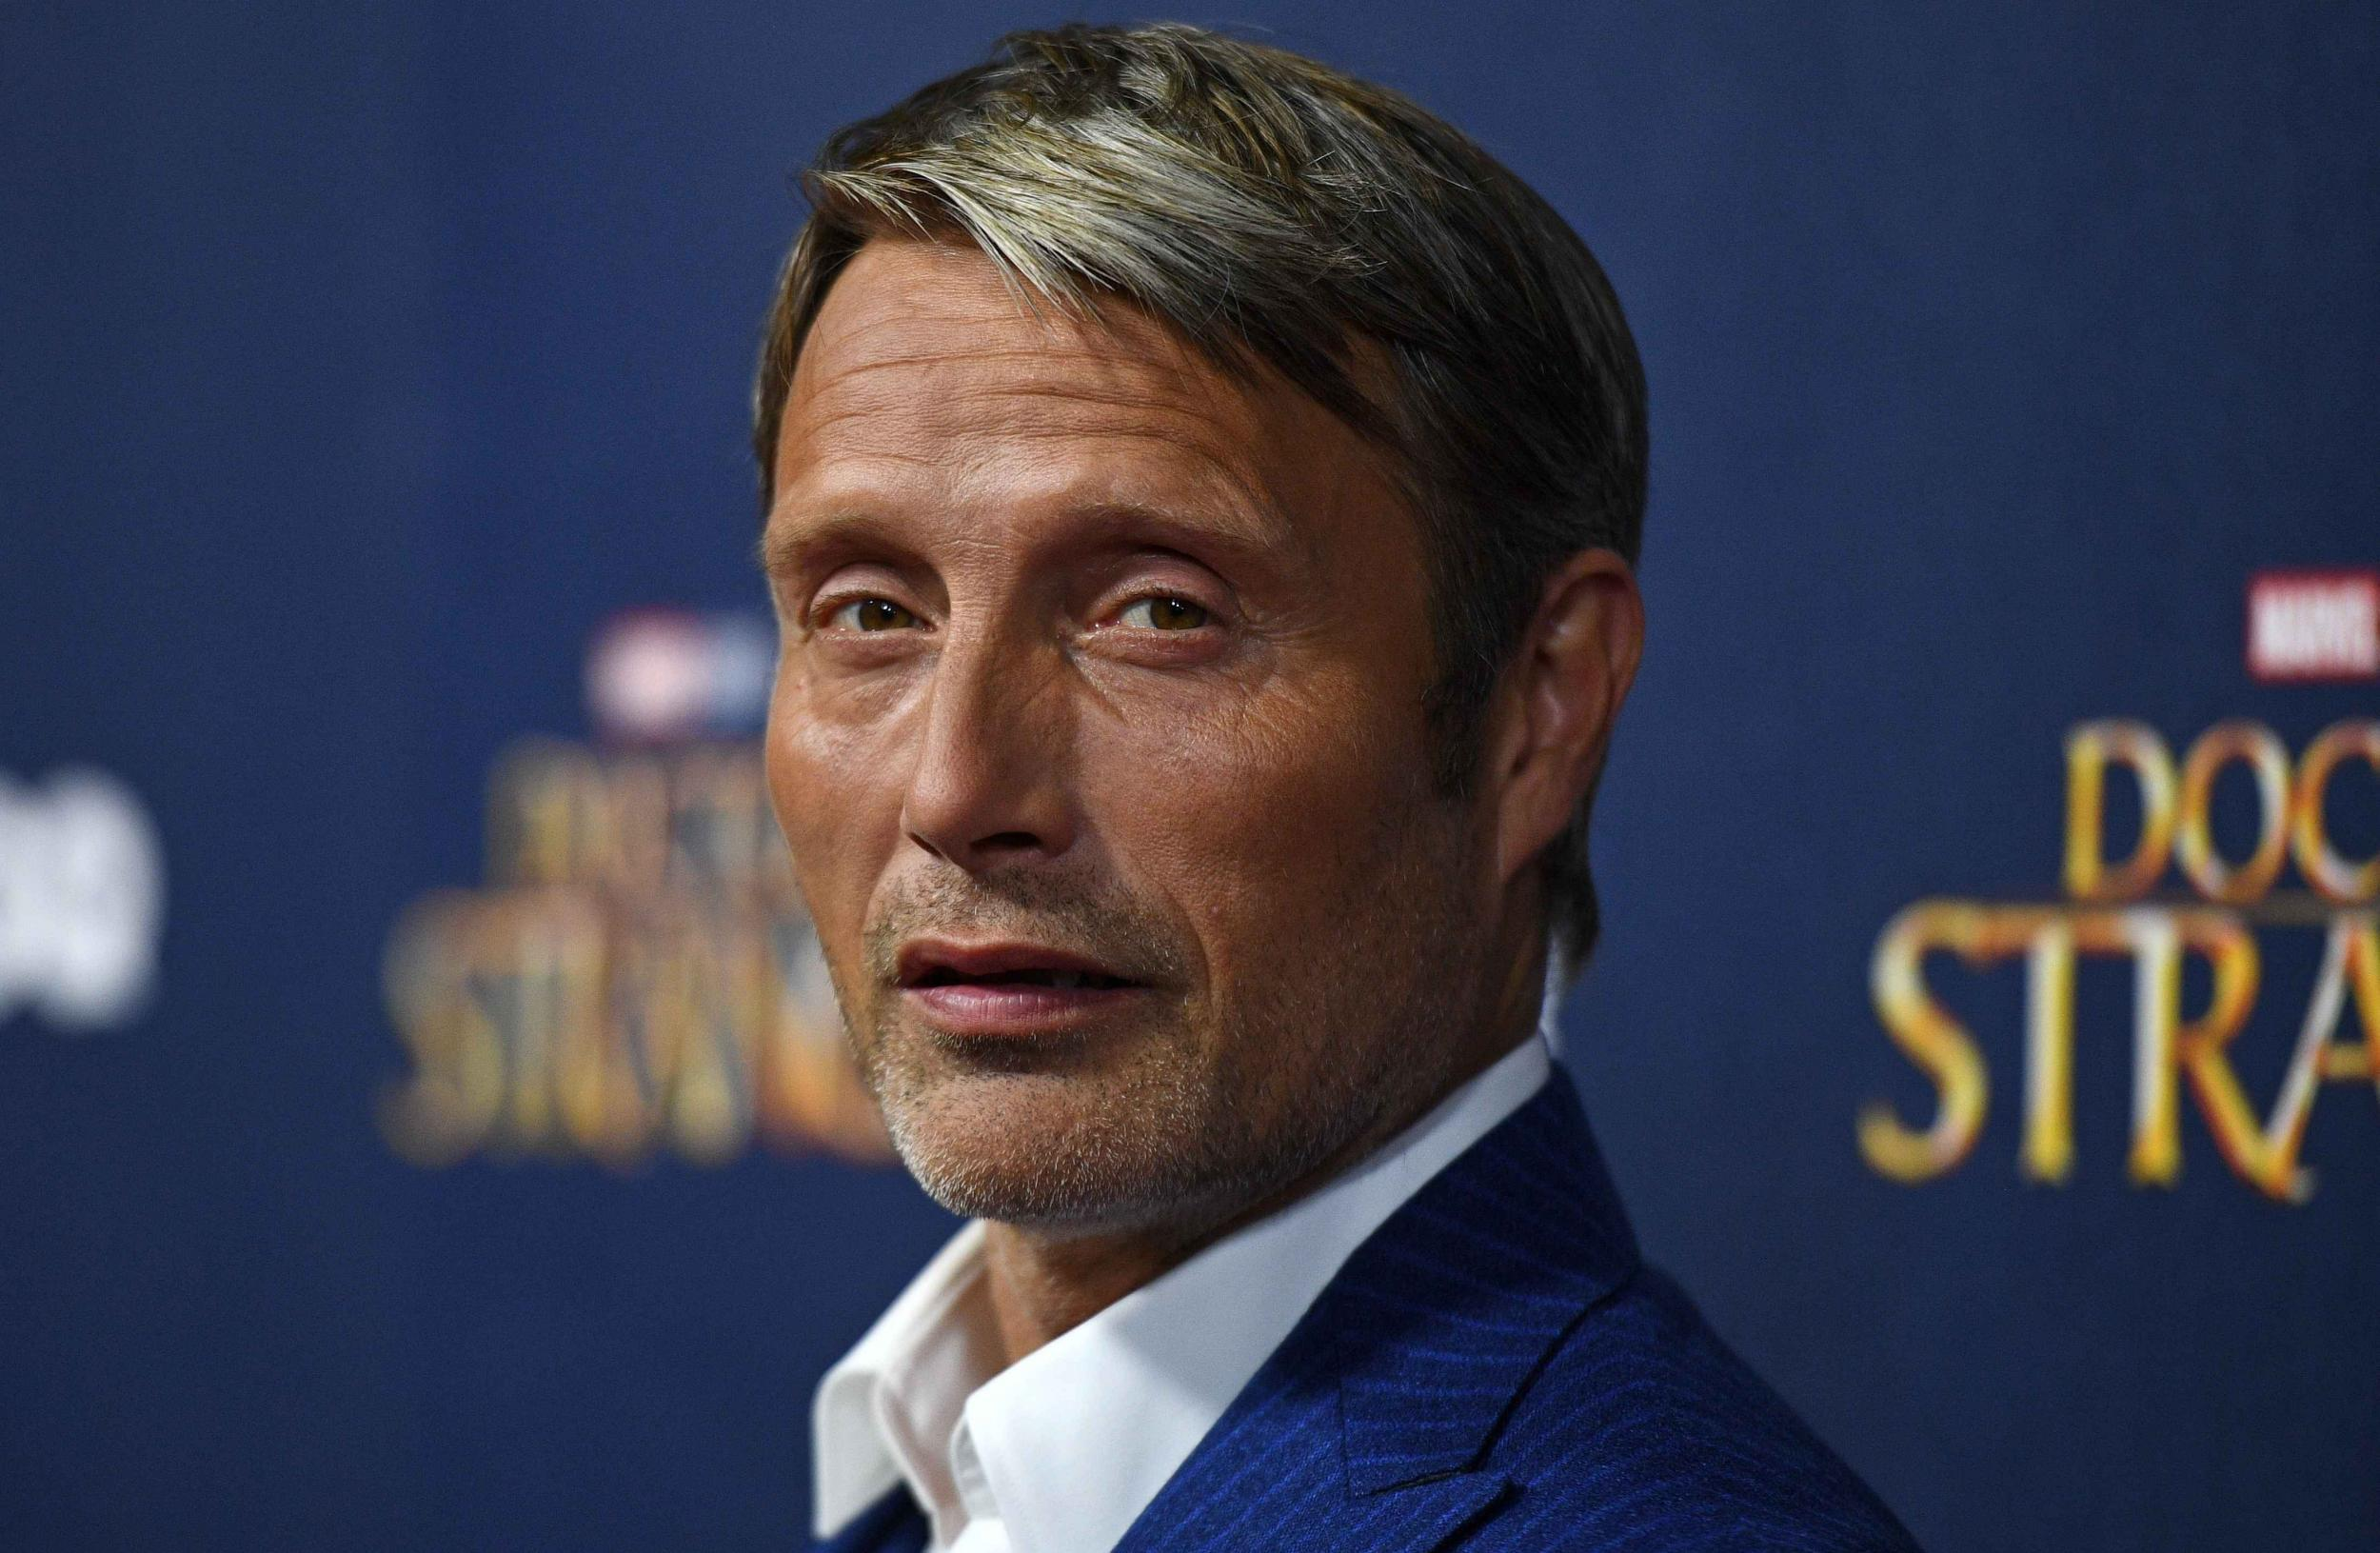 Doctor Strange Actor Mads Mikkelsen Interview: 'You Can Be